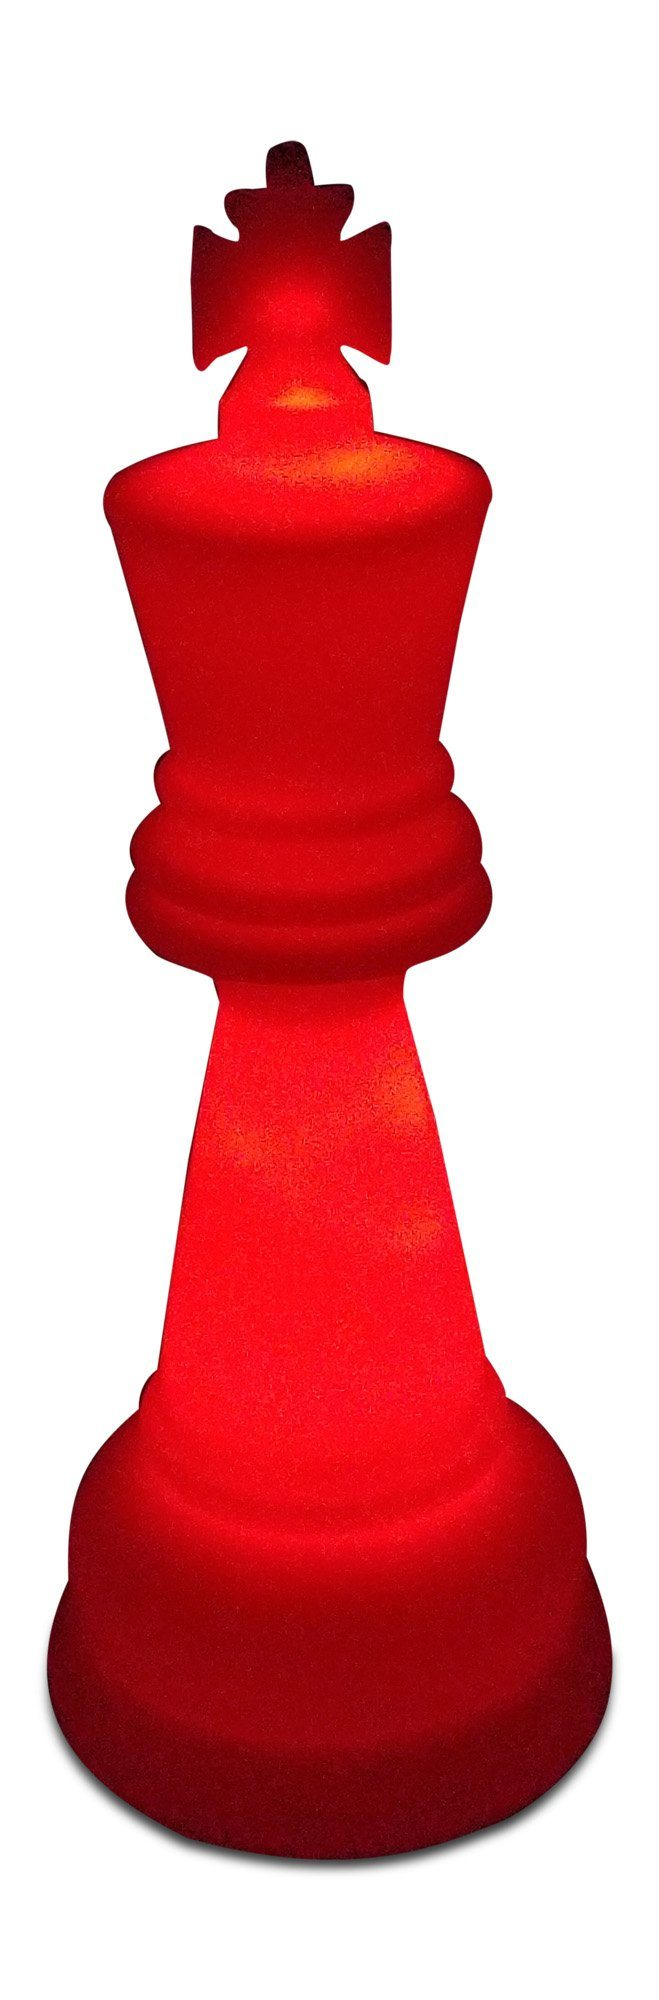 MegaChess 38 Inch Perfect King Light-Up Giant Chess Piece - Red | Default Title | MegaChess.com